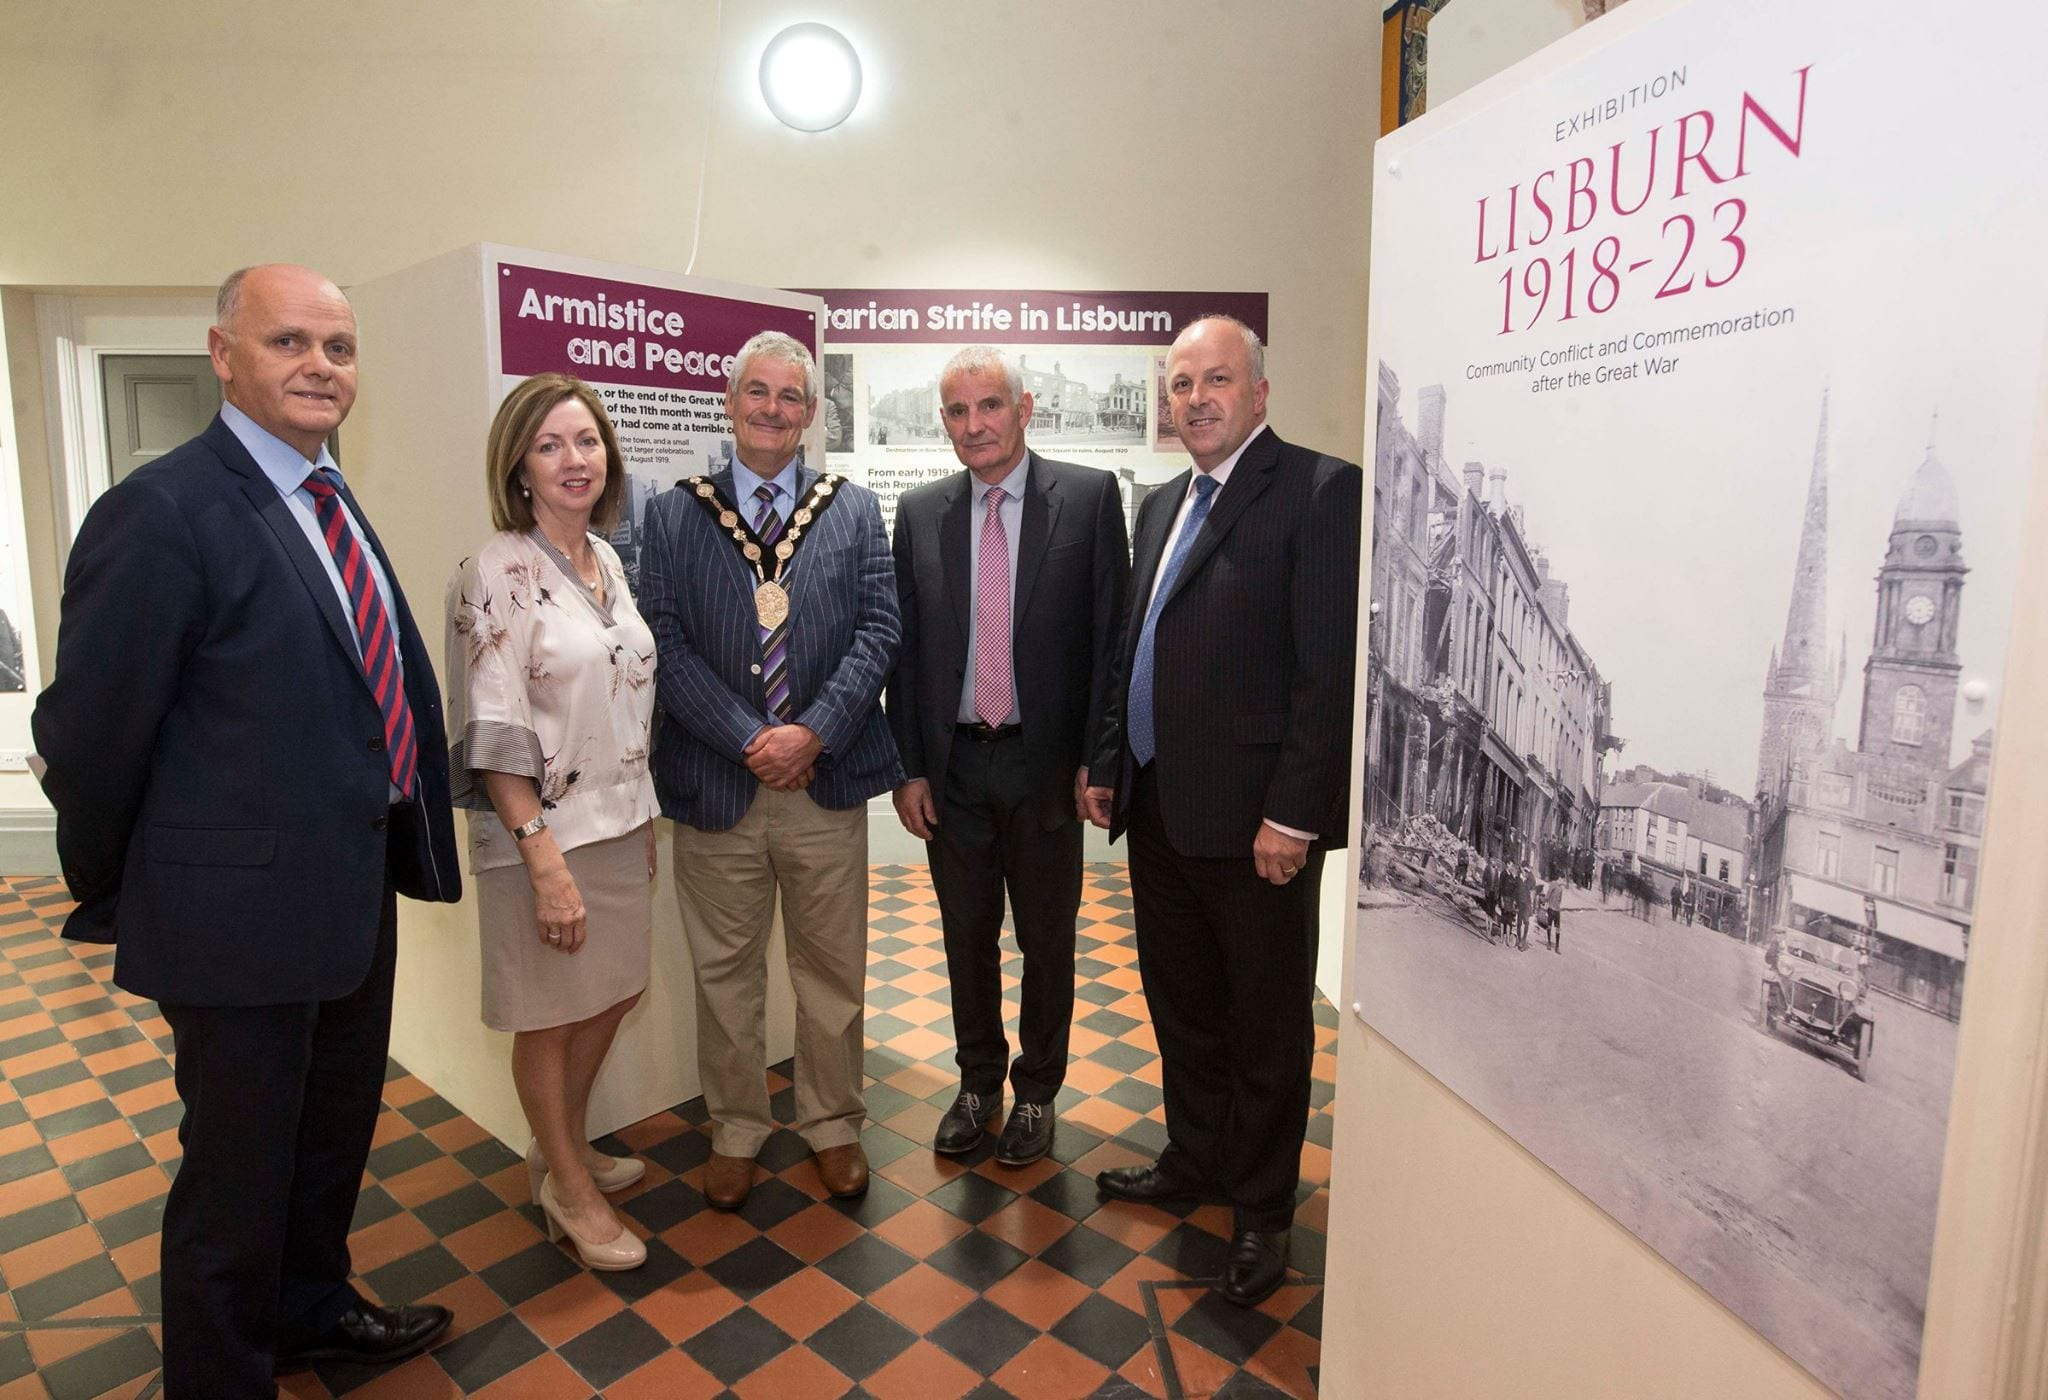 Lisburn 1918-23 Exhibition